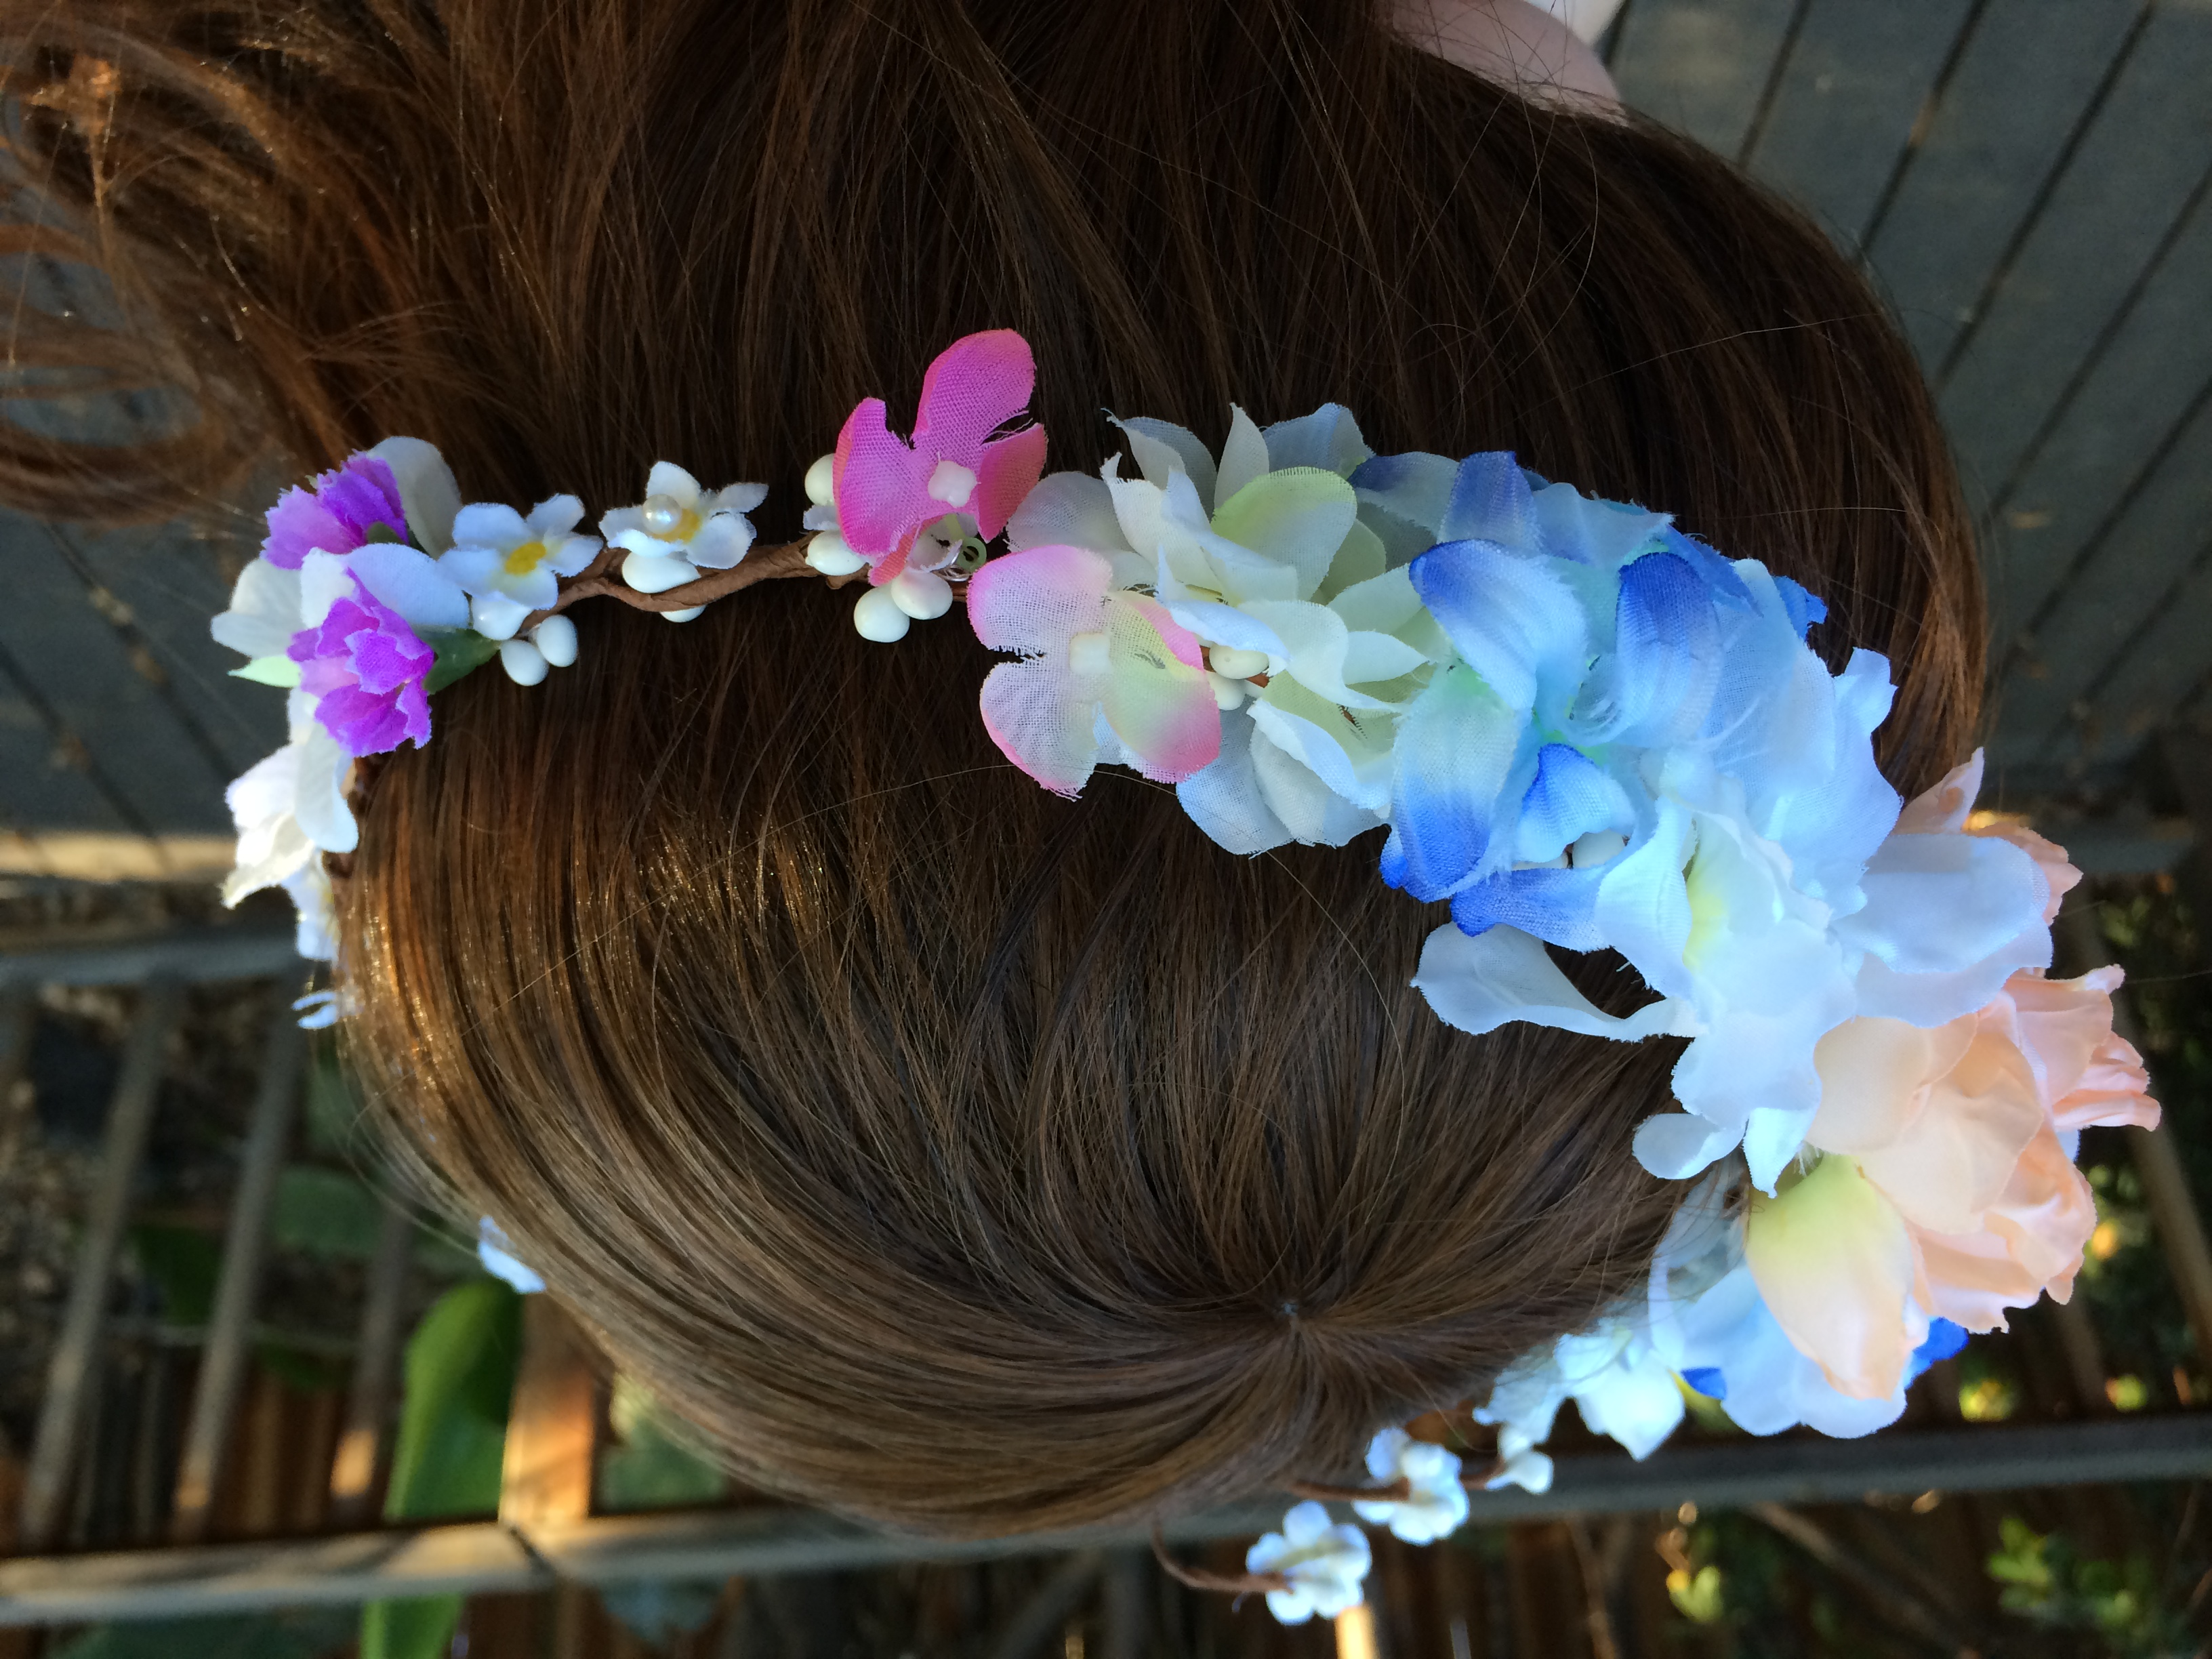 Whimsical Wedding Floral Crown Fairy Garden Flower Crown Headband